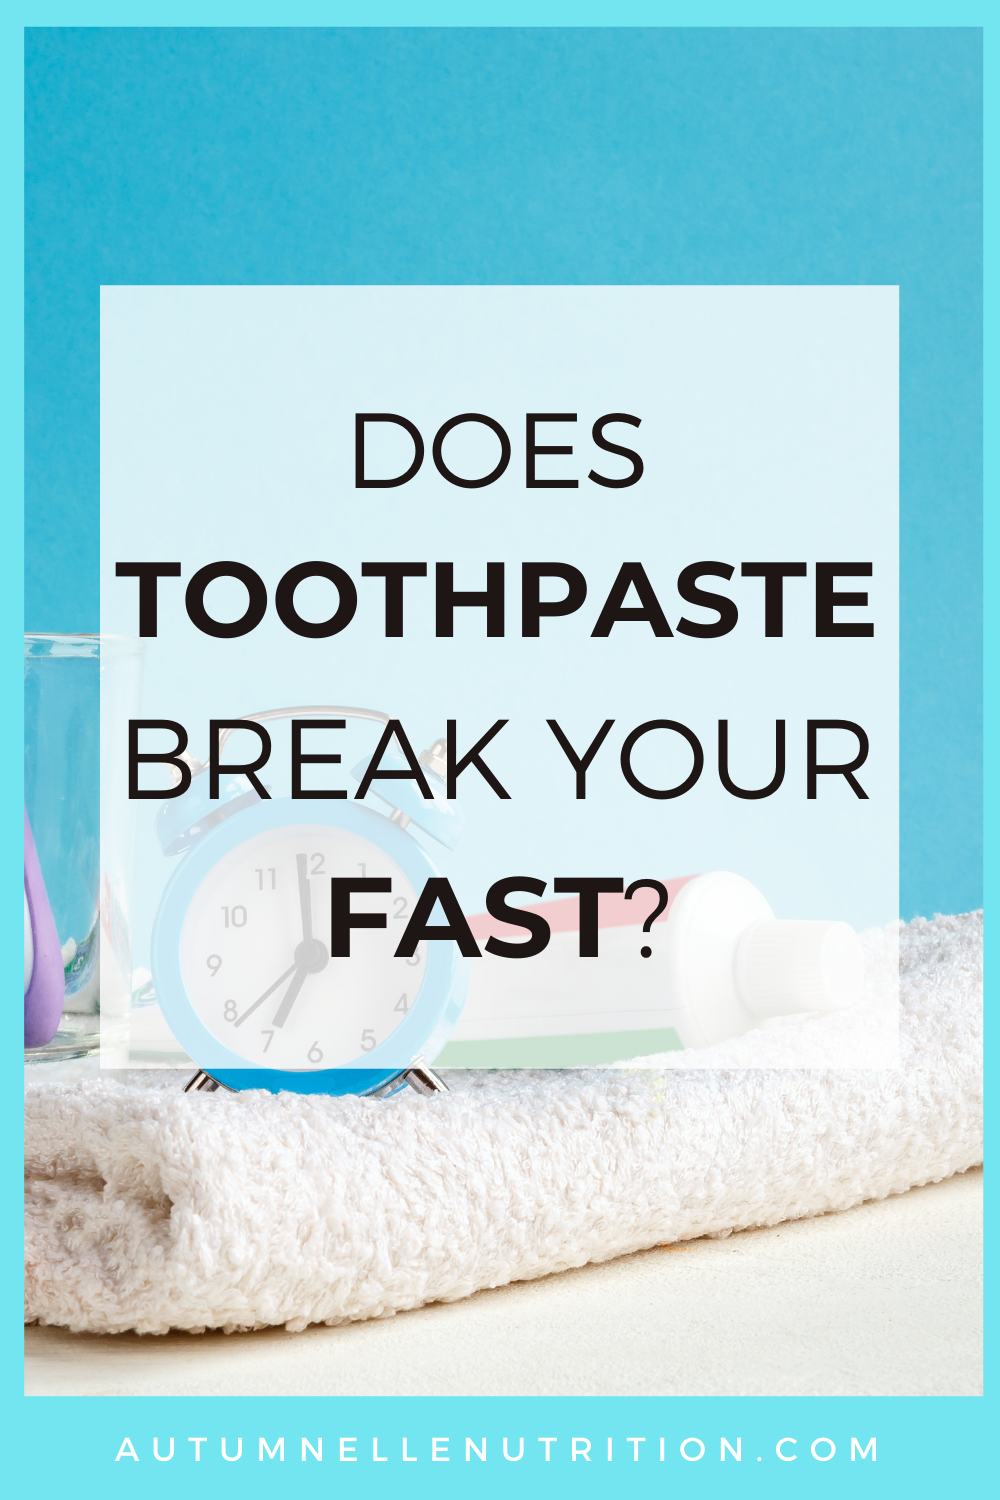 Does Toothpaste Break A Fast?